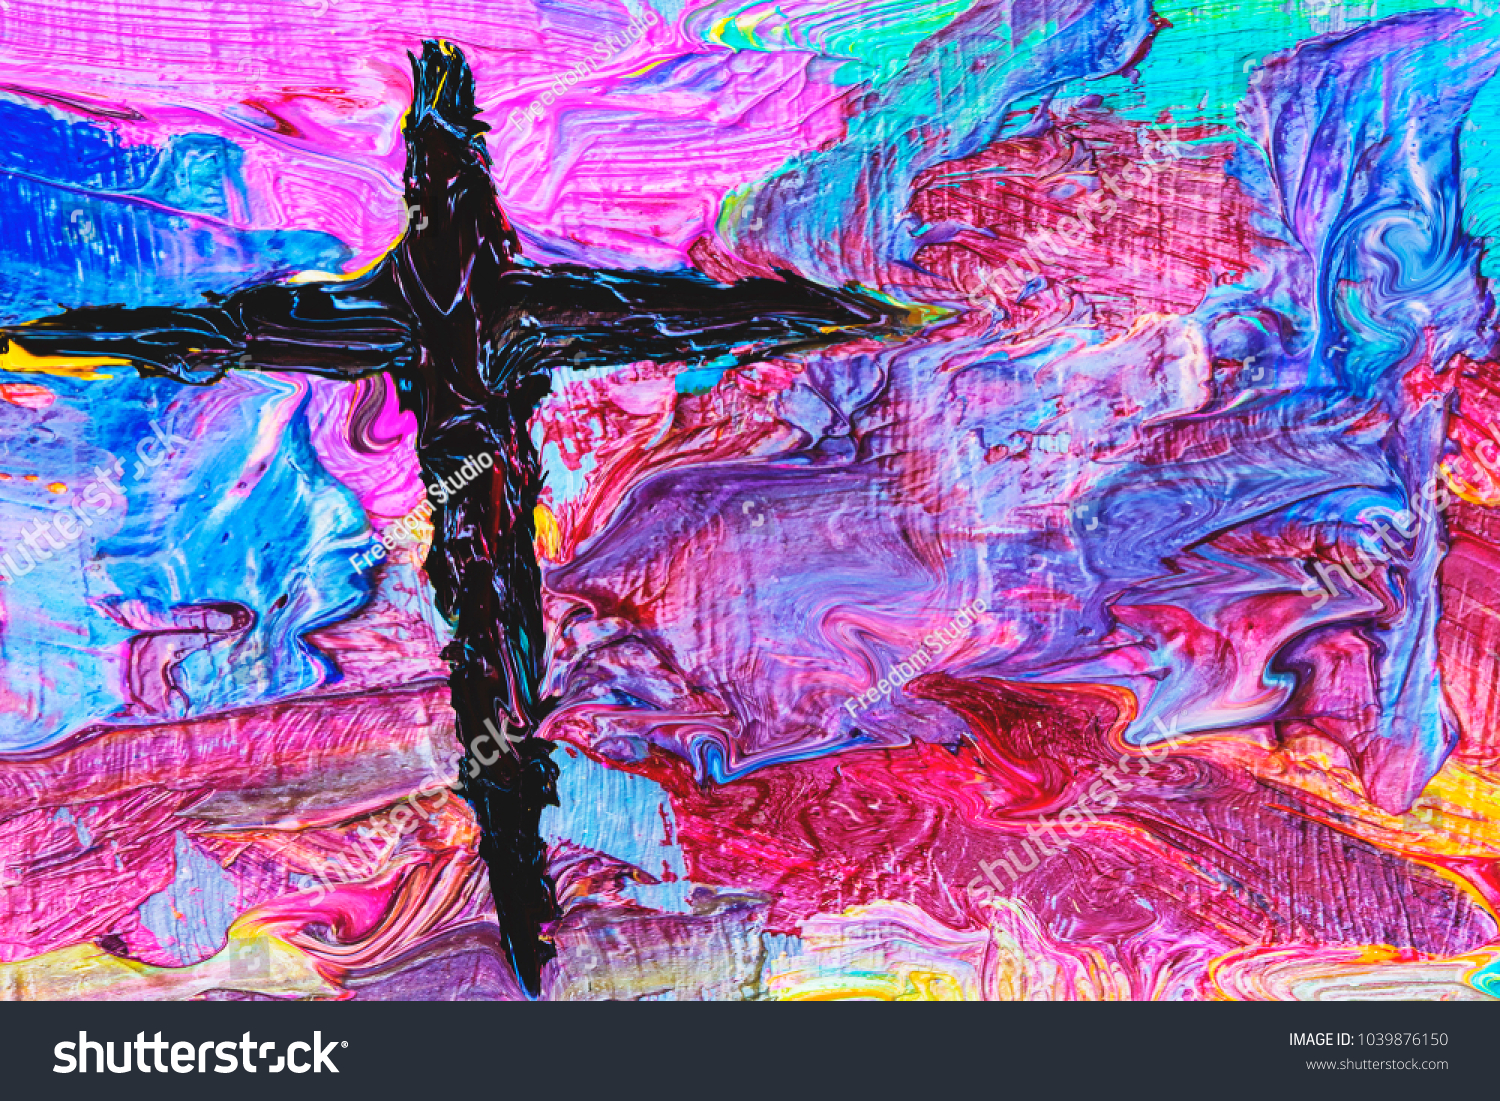 Royalty Free Stock Illustration of Colorful Cross By Oil Painting ...